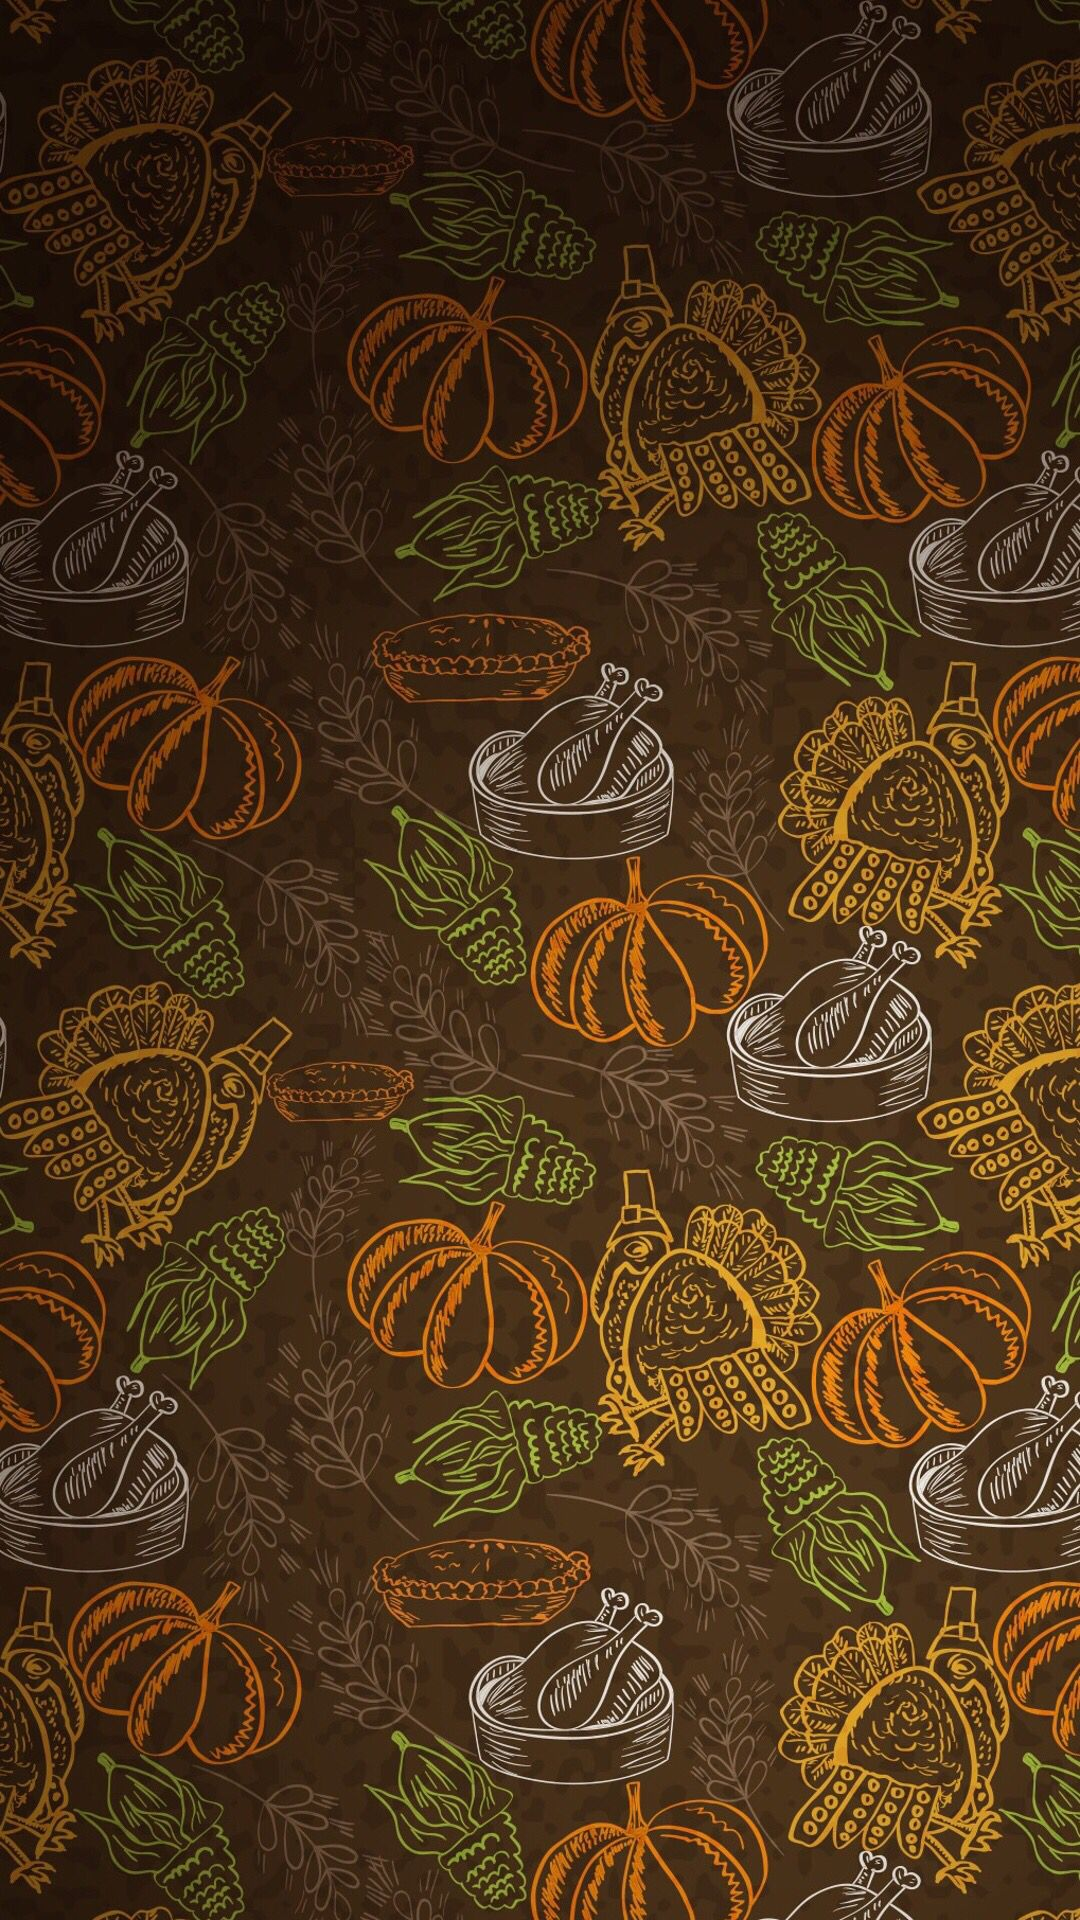 Thanksgiving wallpaper Zedge Thanksgiving wallpaper